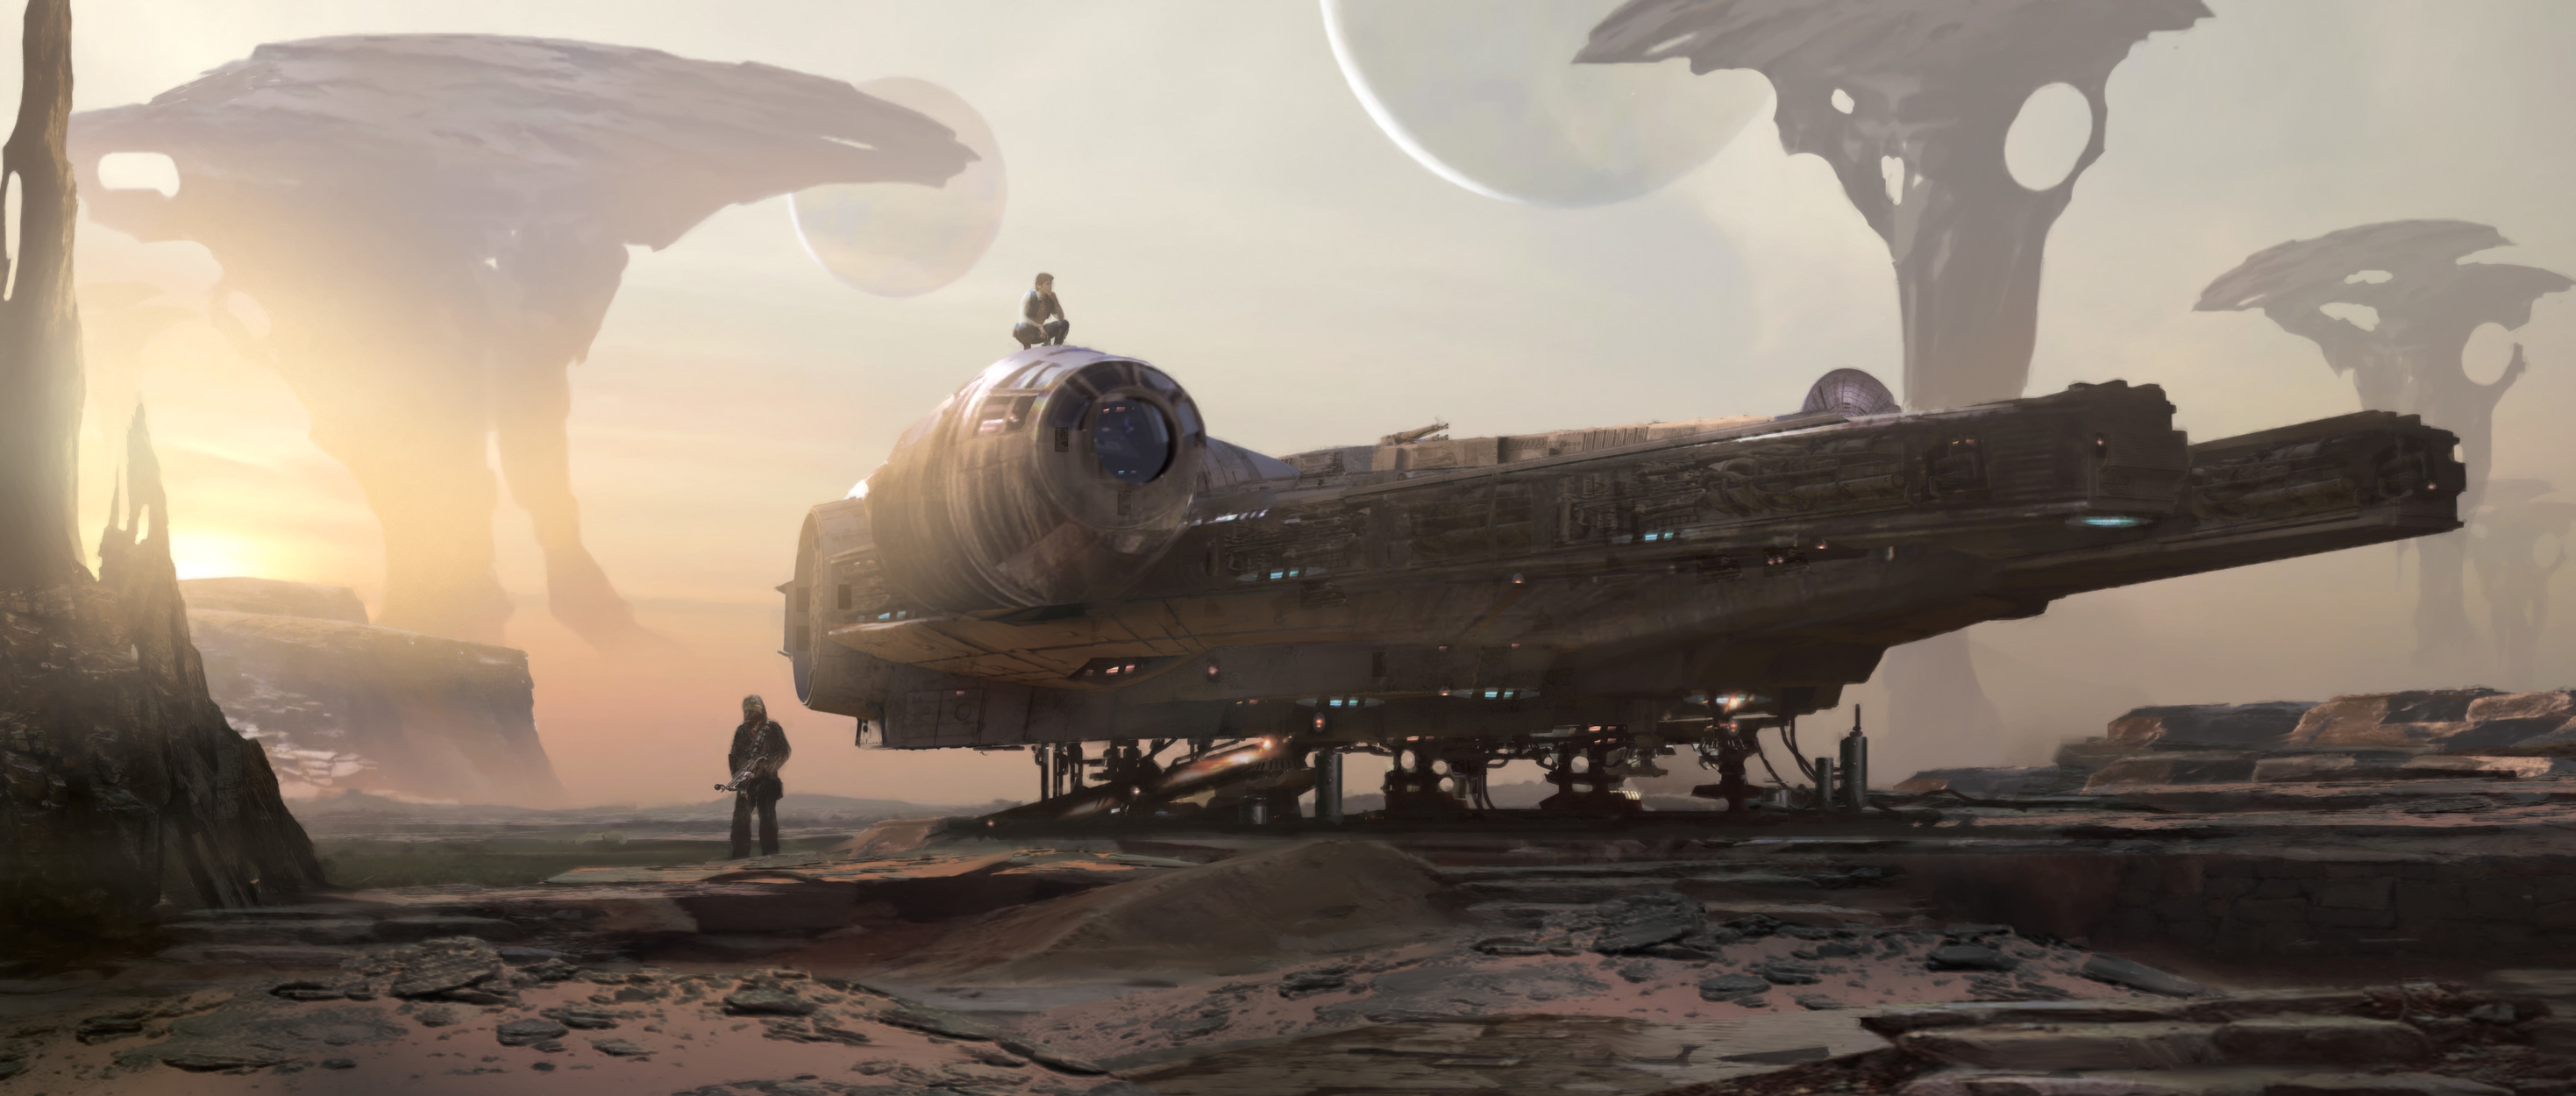 smuggler's rendez vous Artwork by stephan martiniere